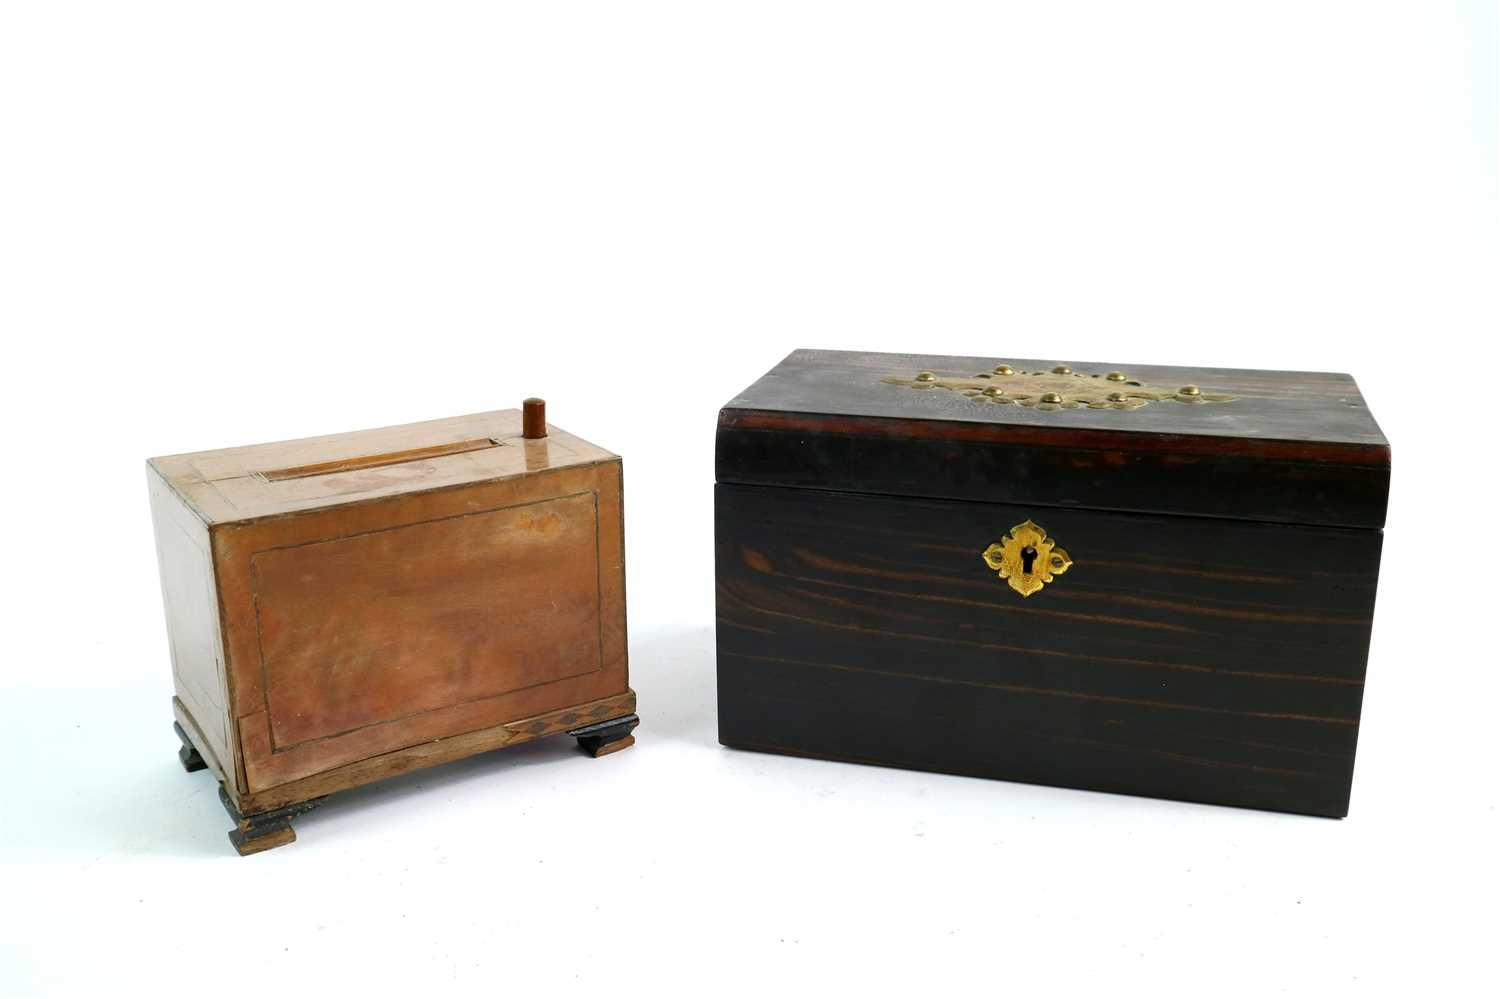 Lot 180-A Victorian coromandel veneered tea caddy and an early 20th century cigarette dispenser